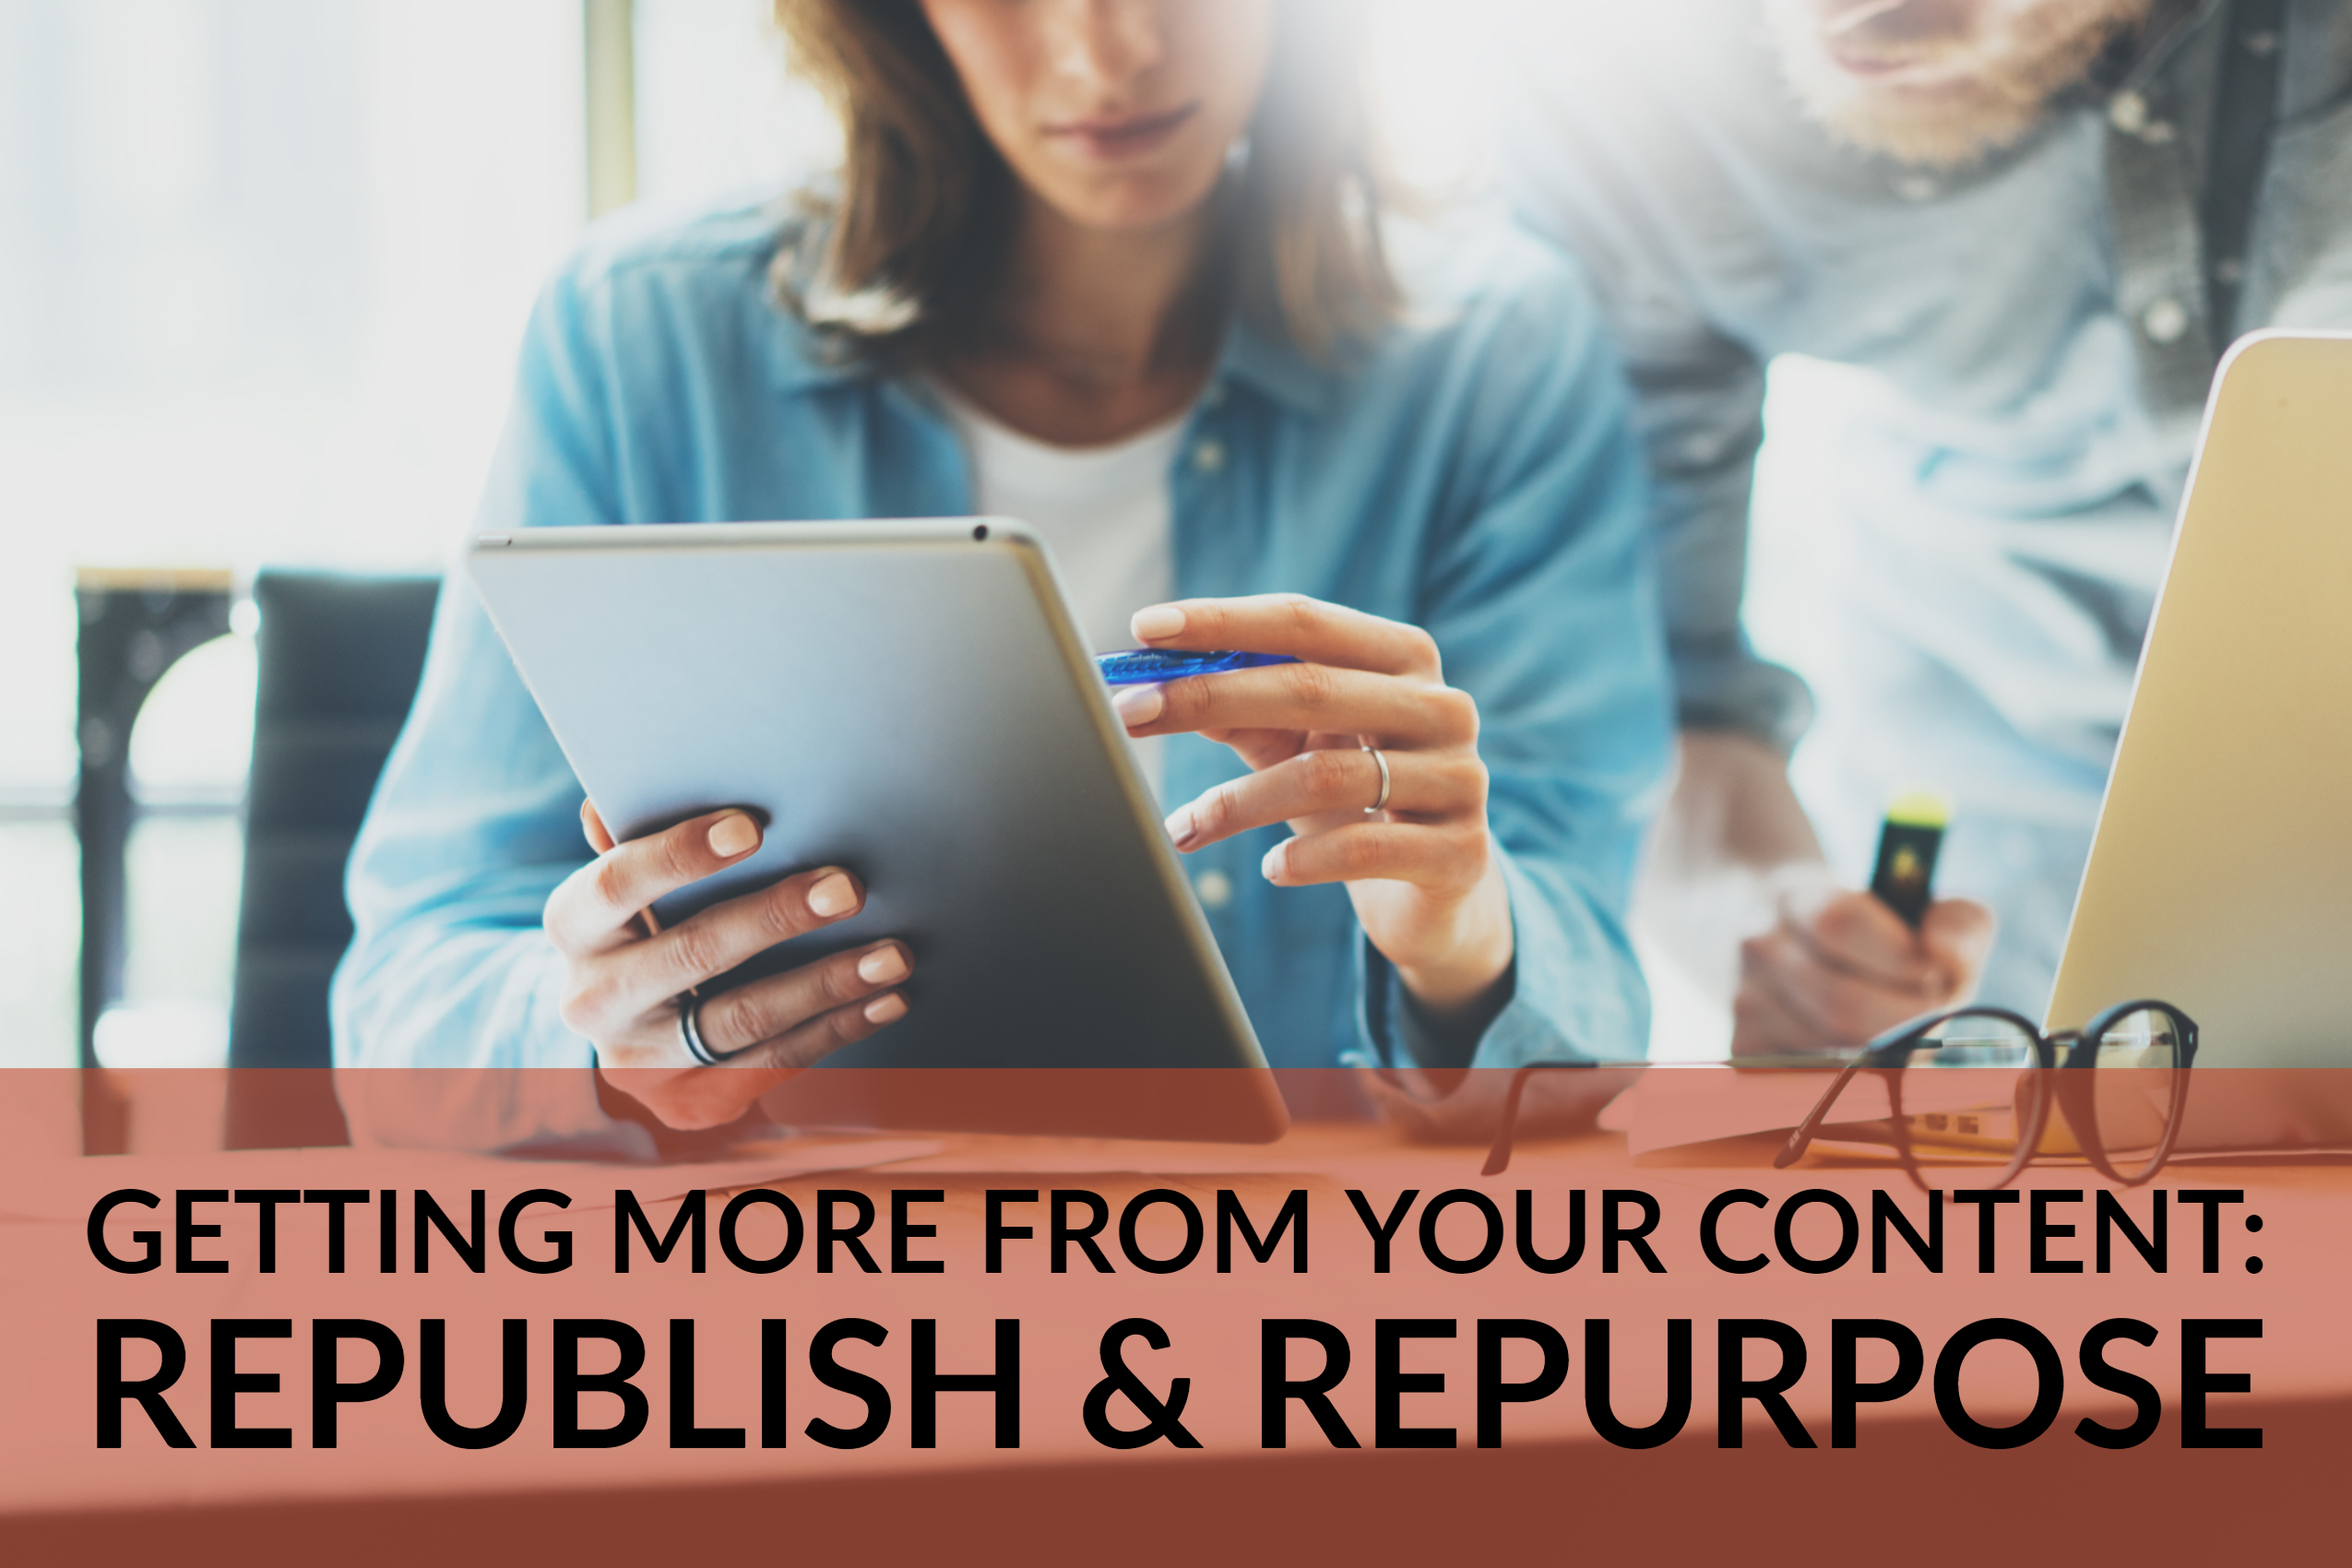 Getting More From Your Content_ Republish & Repurpose